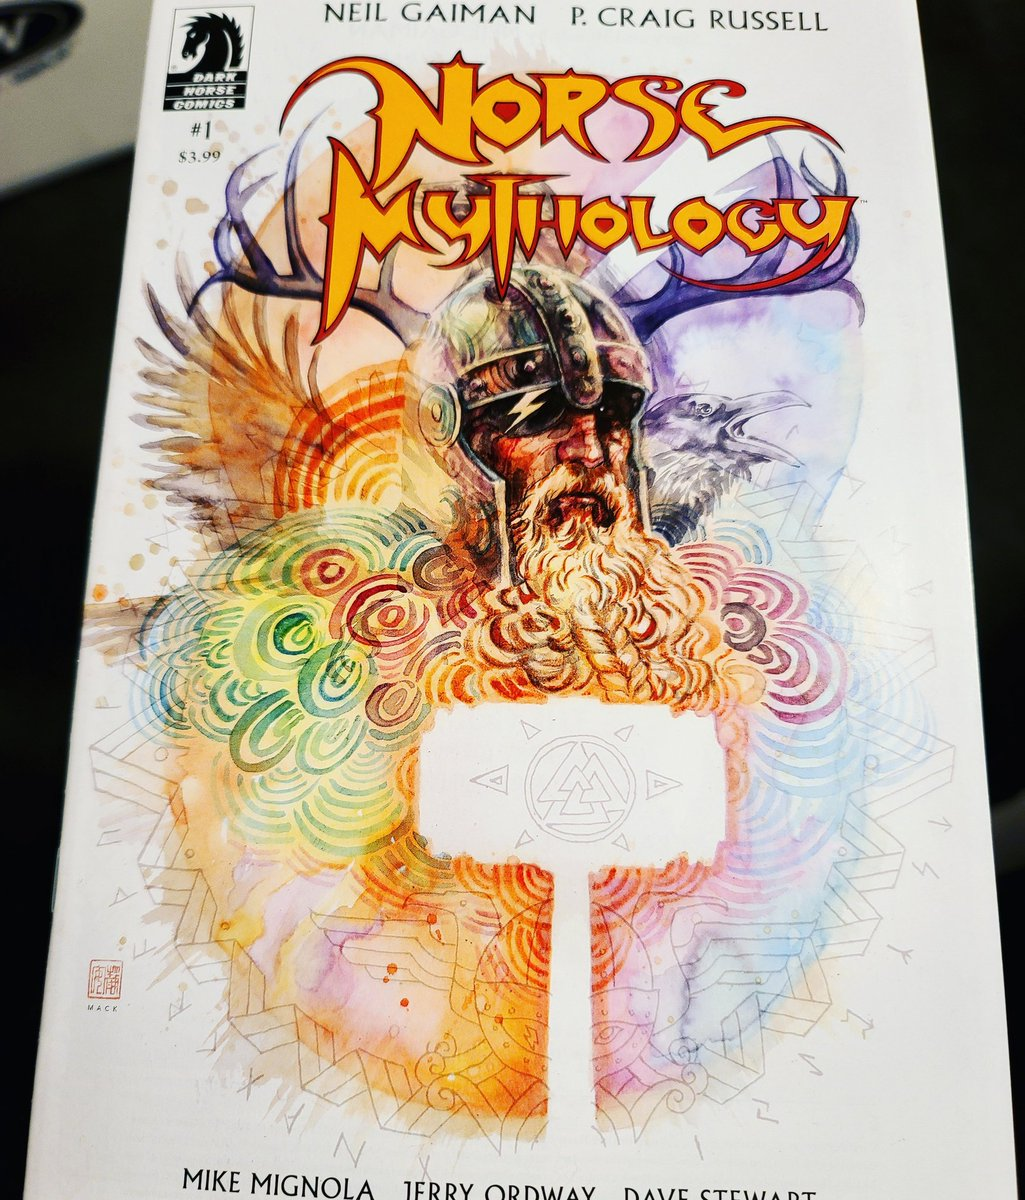 Jesus' #coveroftheday is Norse Mythology #1 by P. Craig Russell! This book looks amazing!  Norse Mythology #1 is written by @neilhimself and P. Craig Russell. Interior art is handled by P. Craig Russell, @artofmmignola and @JerryOrdway. It released on October 7, 2020. https://t.co/saMFNwfJWt